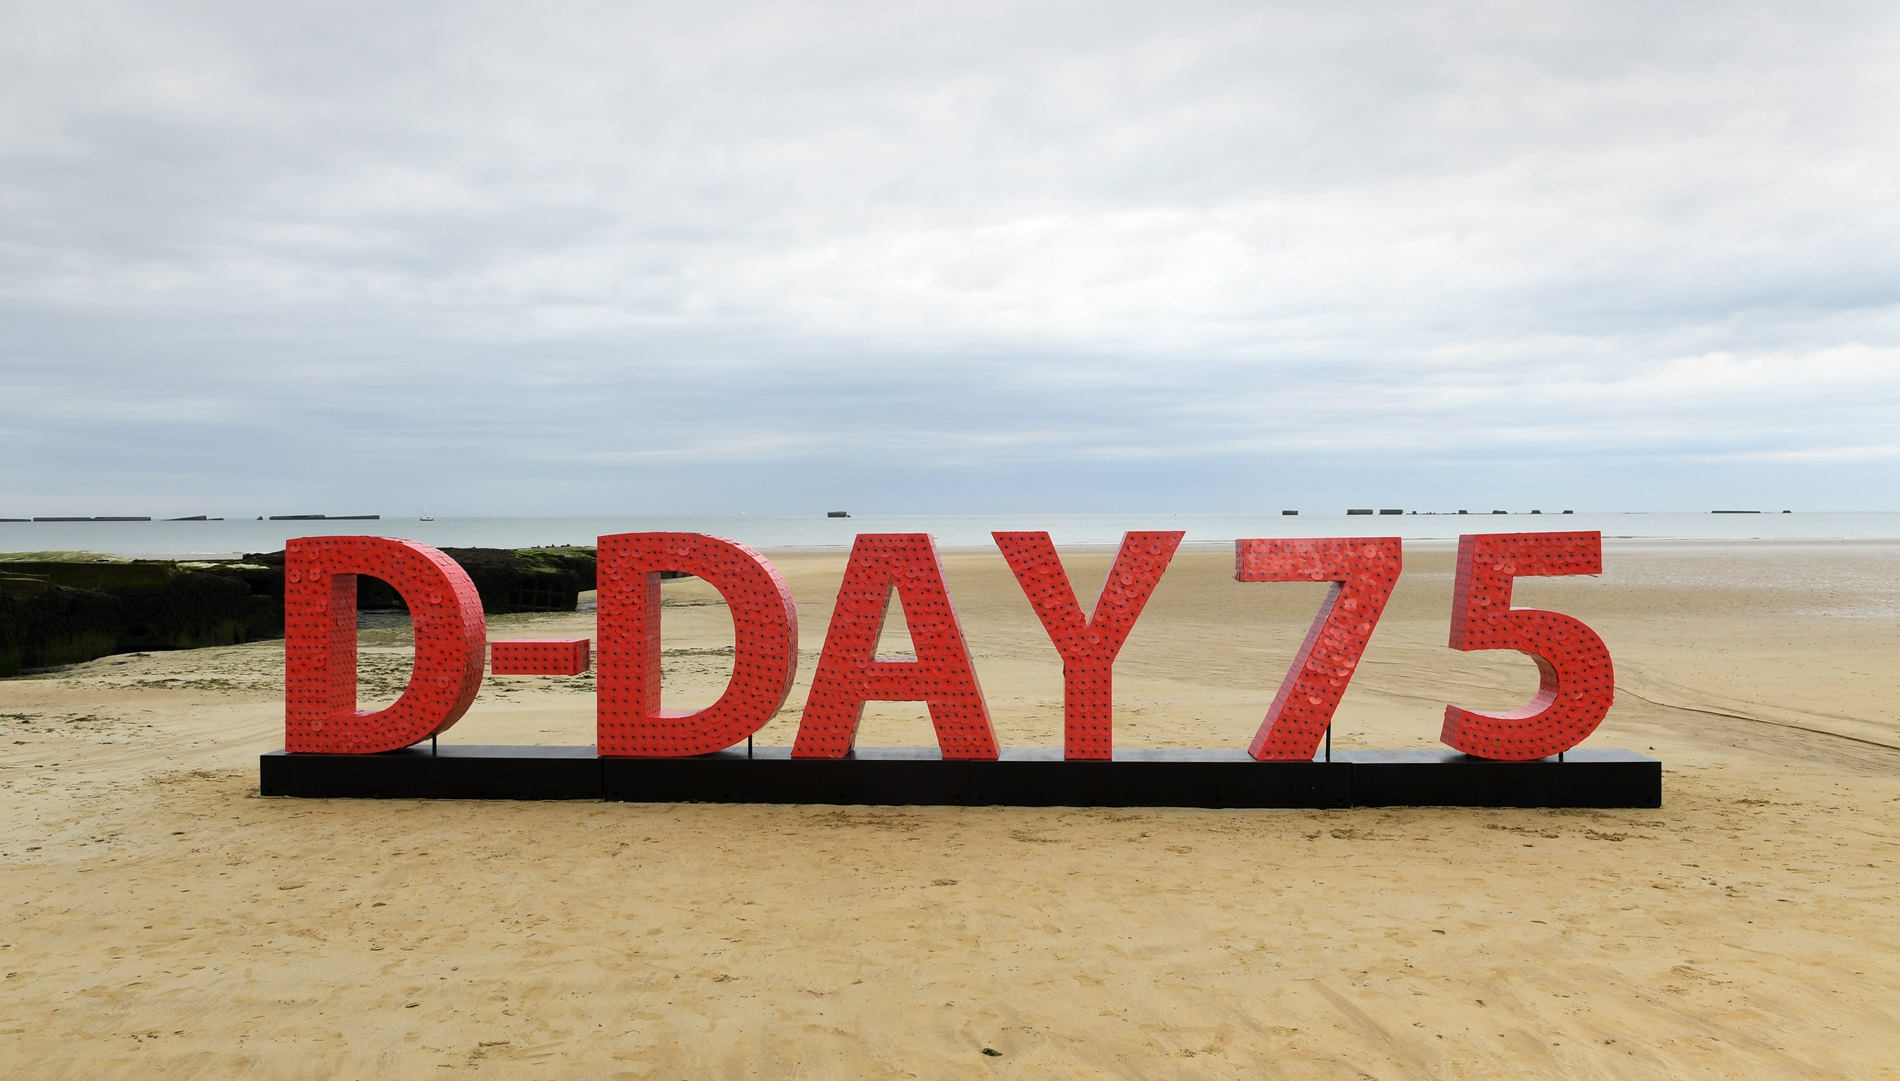 D-Day 75 beach installation made up of 20,000 poppies with messages of support.